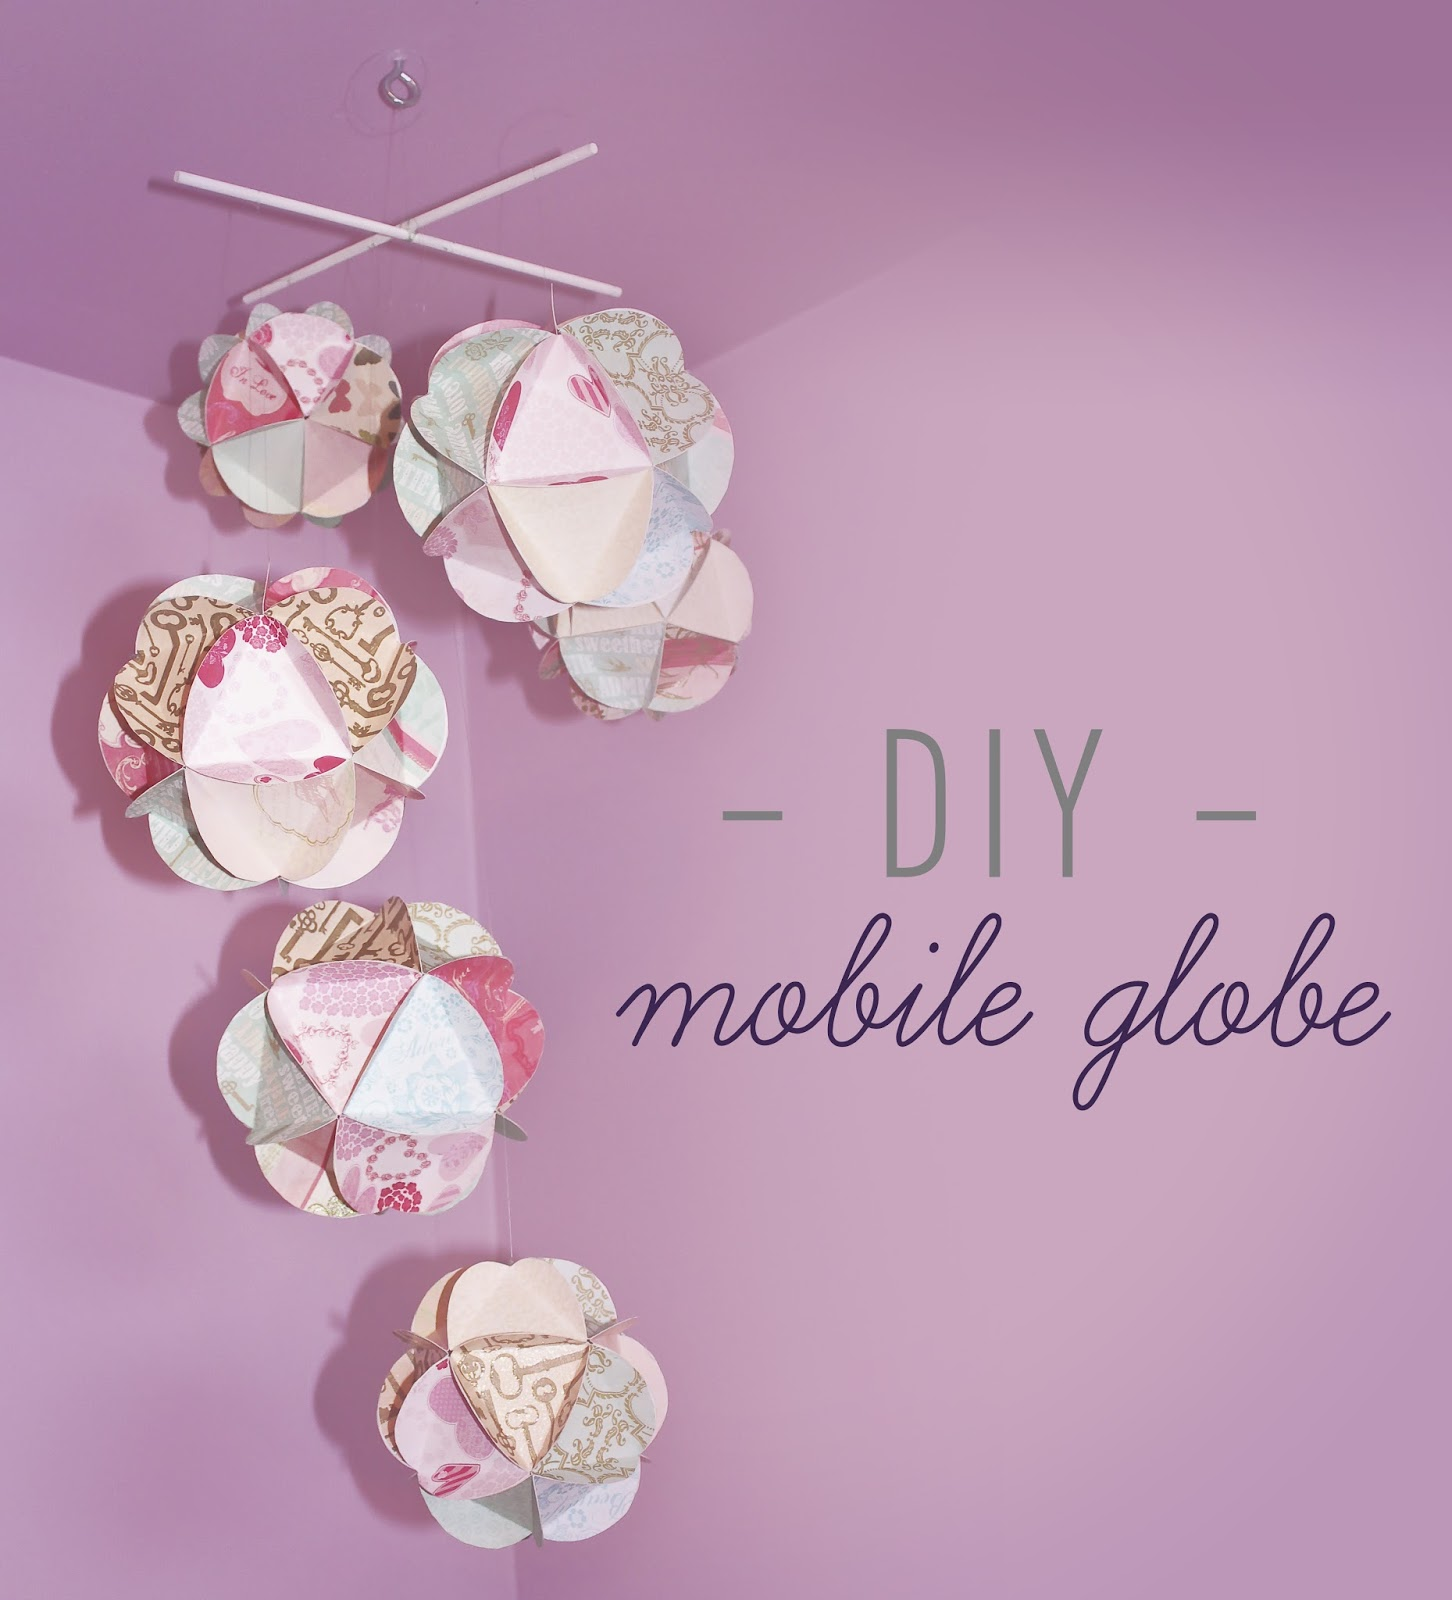 fid les compagnons diy mobile globe. Black Bedroom Furniture Sets. Home Design Ideas